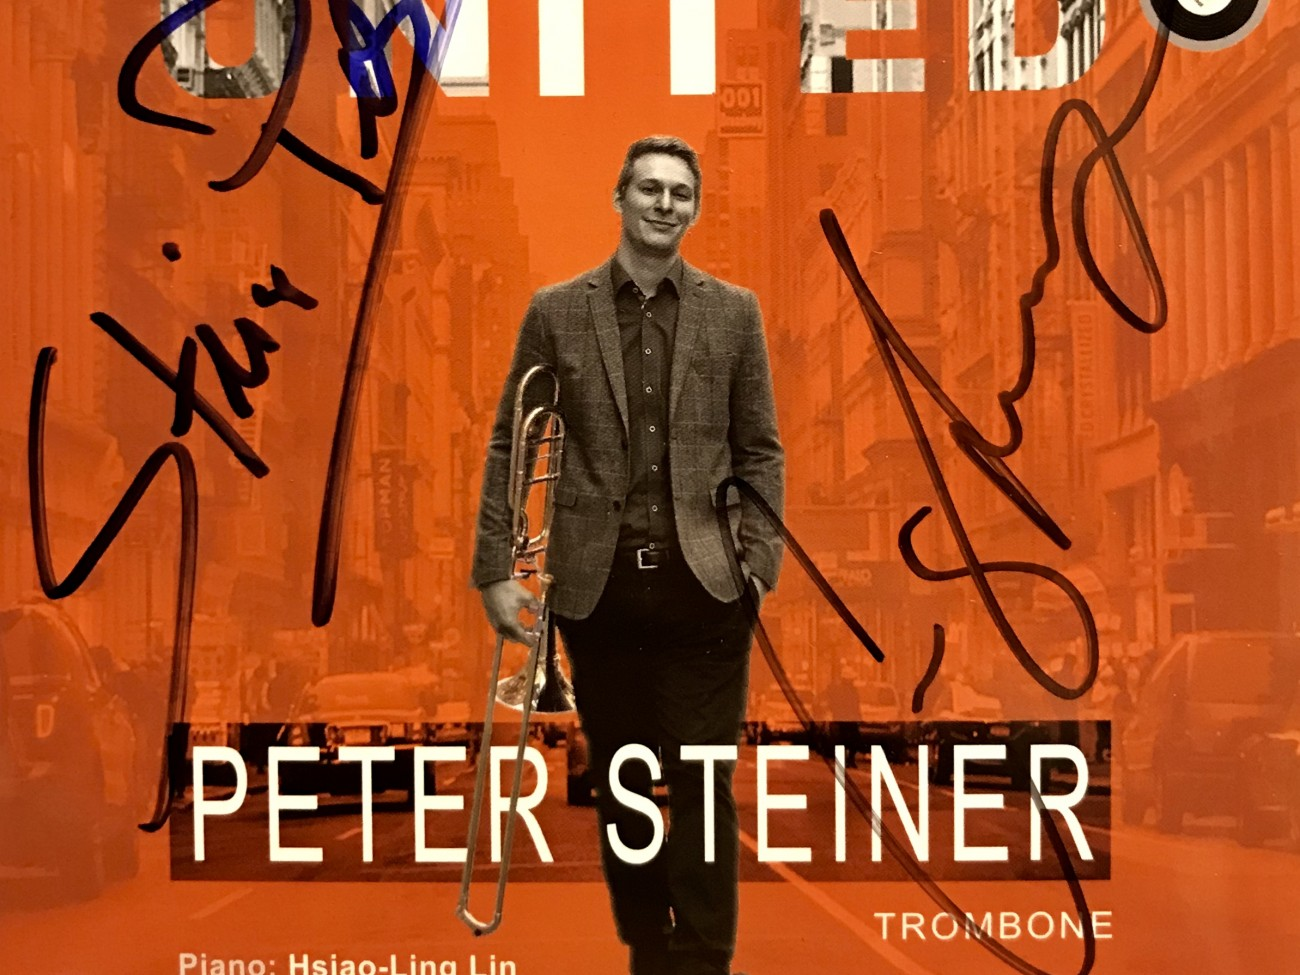 Peter Steiner's United is a New Favorite